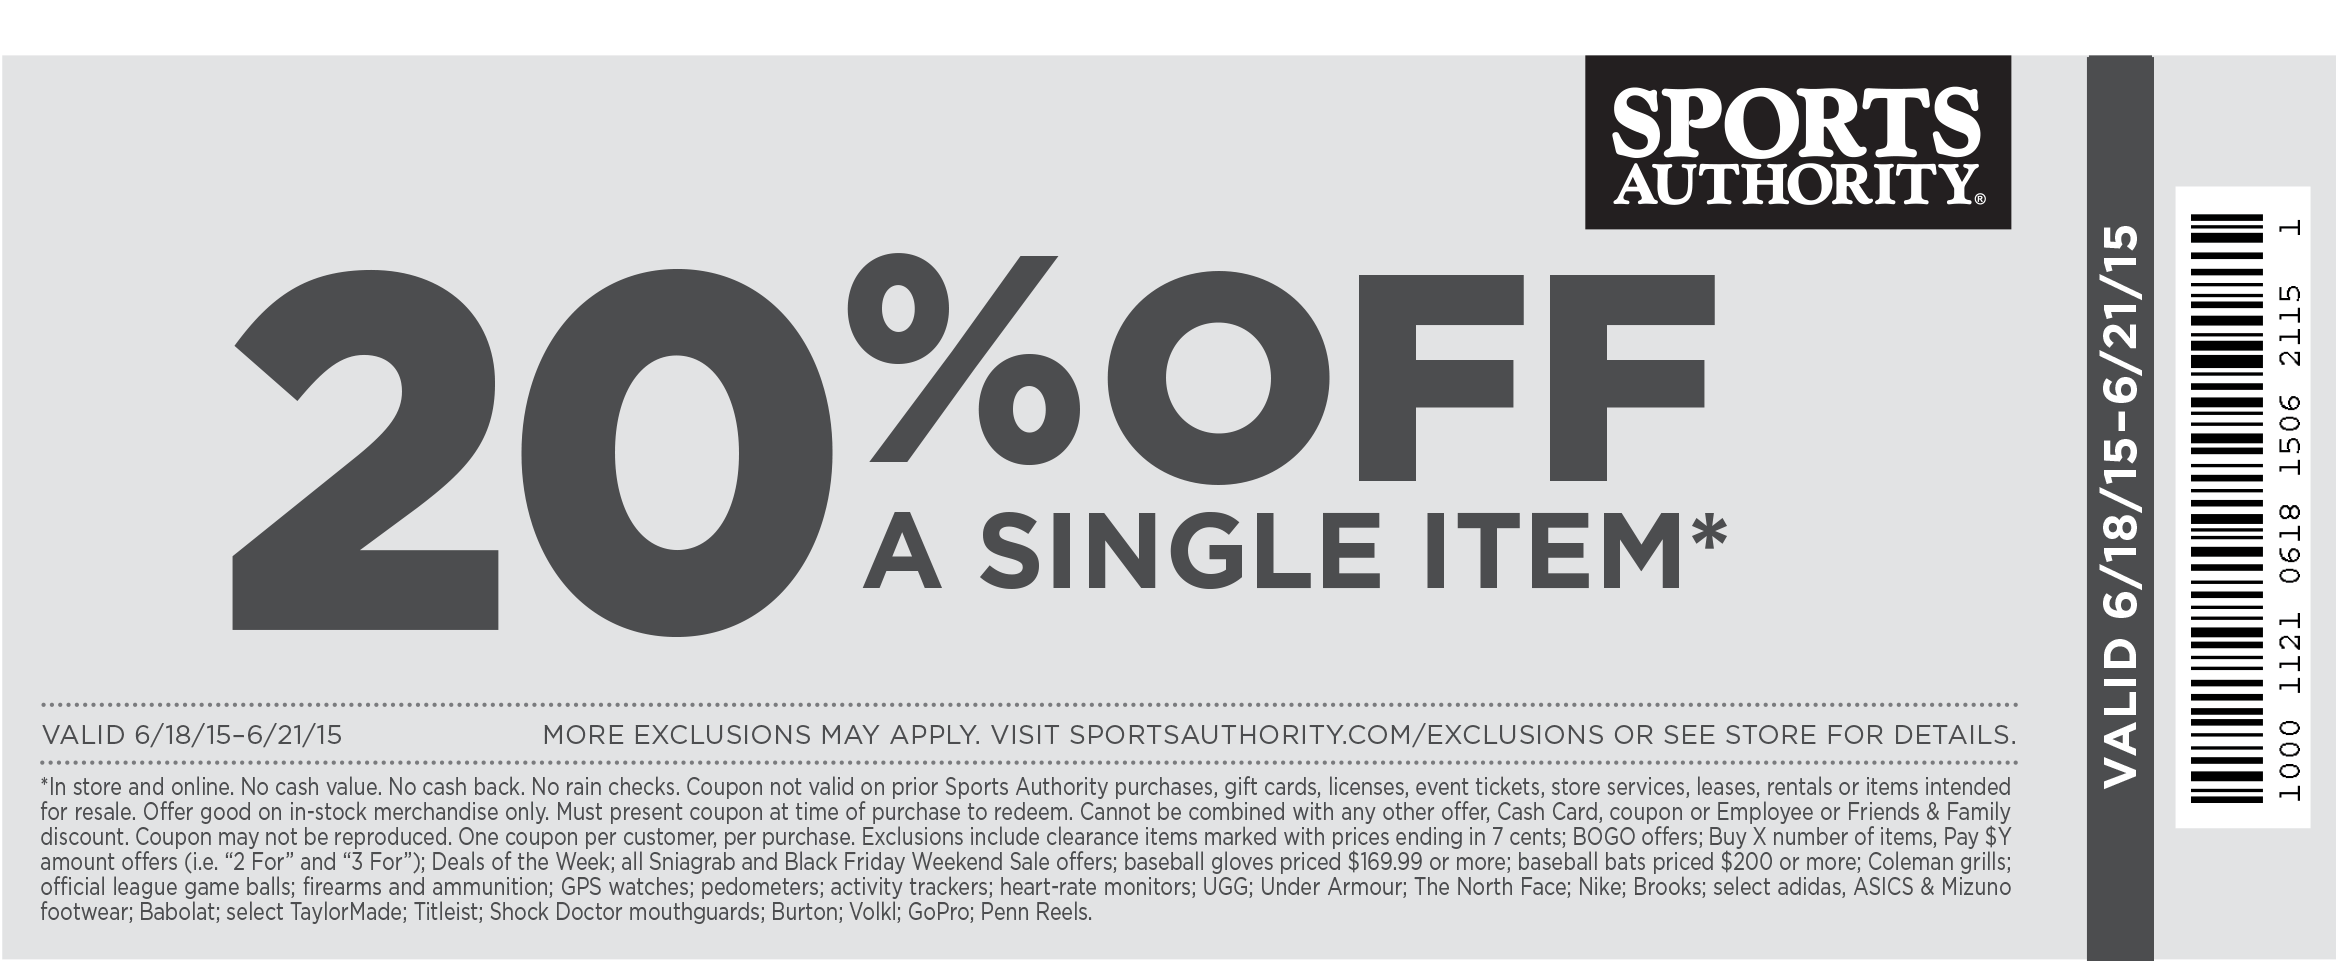 Sports Authority Coupon December 2017 20% off a single item at Sports Authority, ditto online